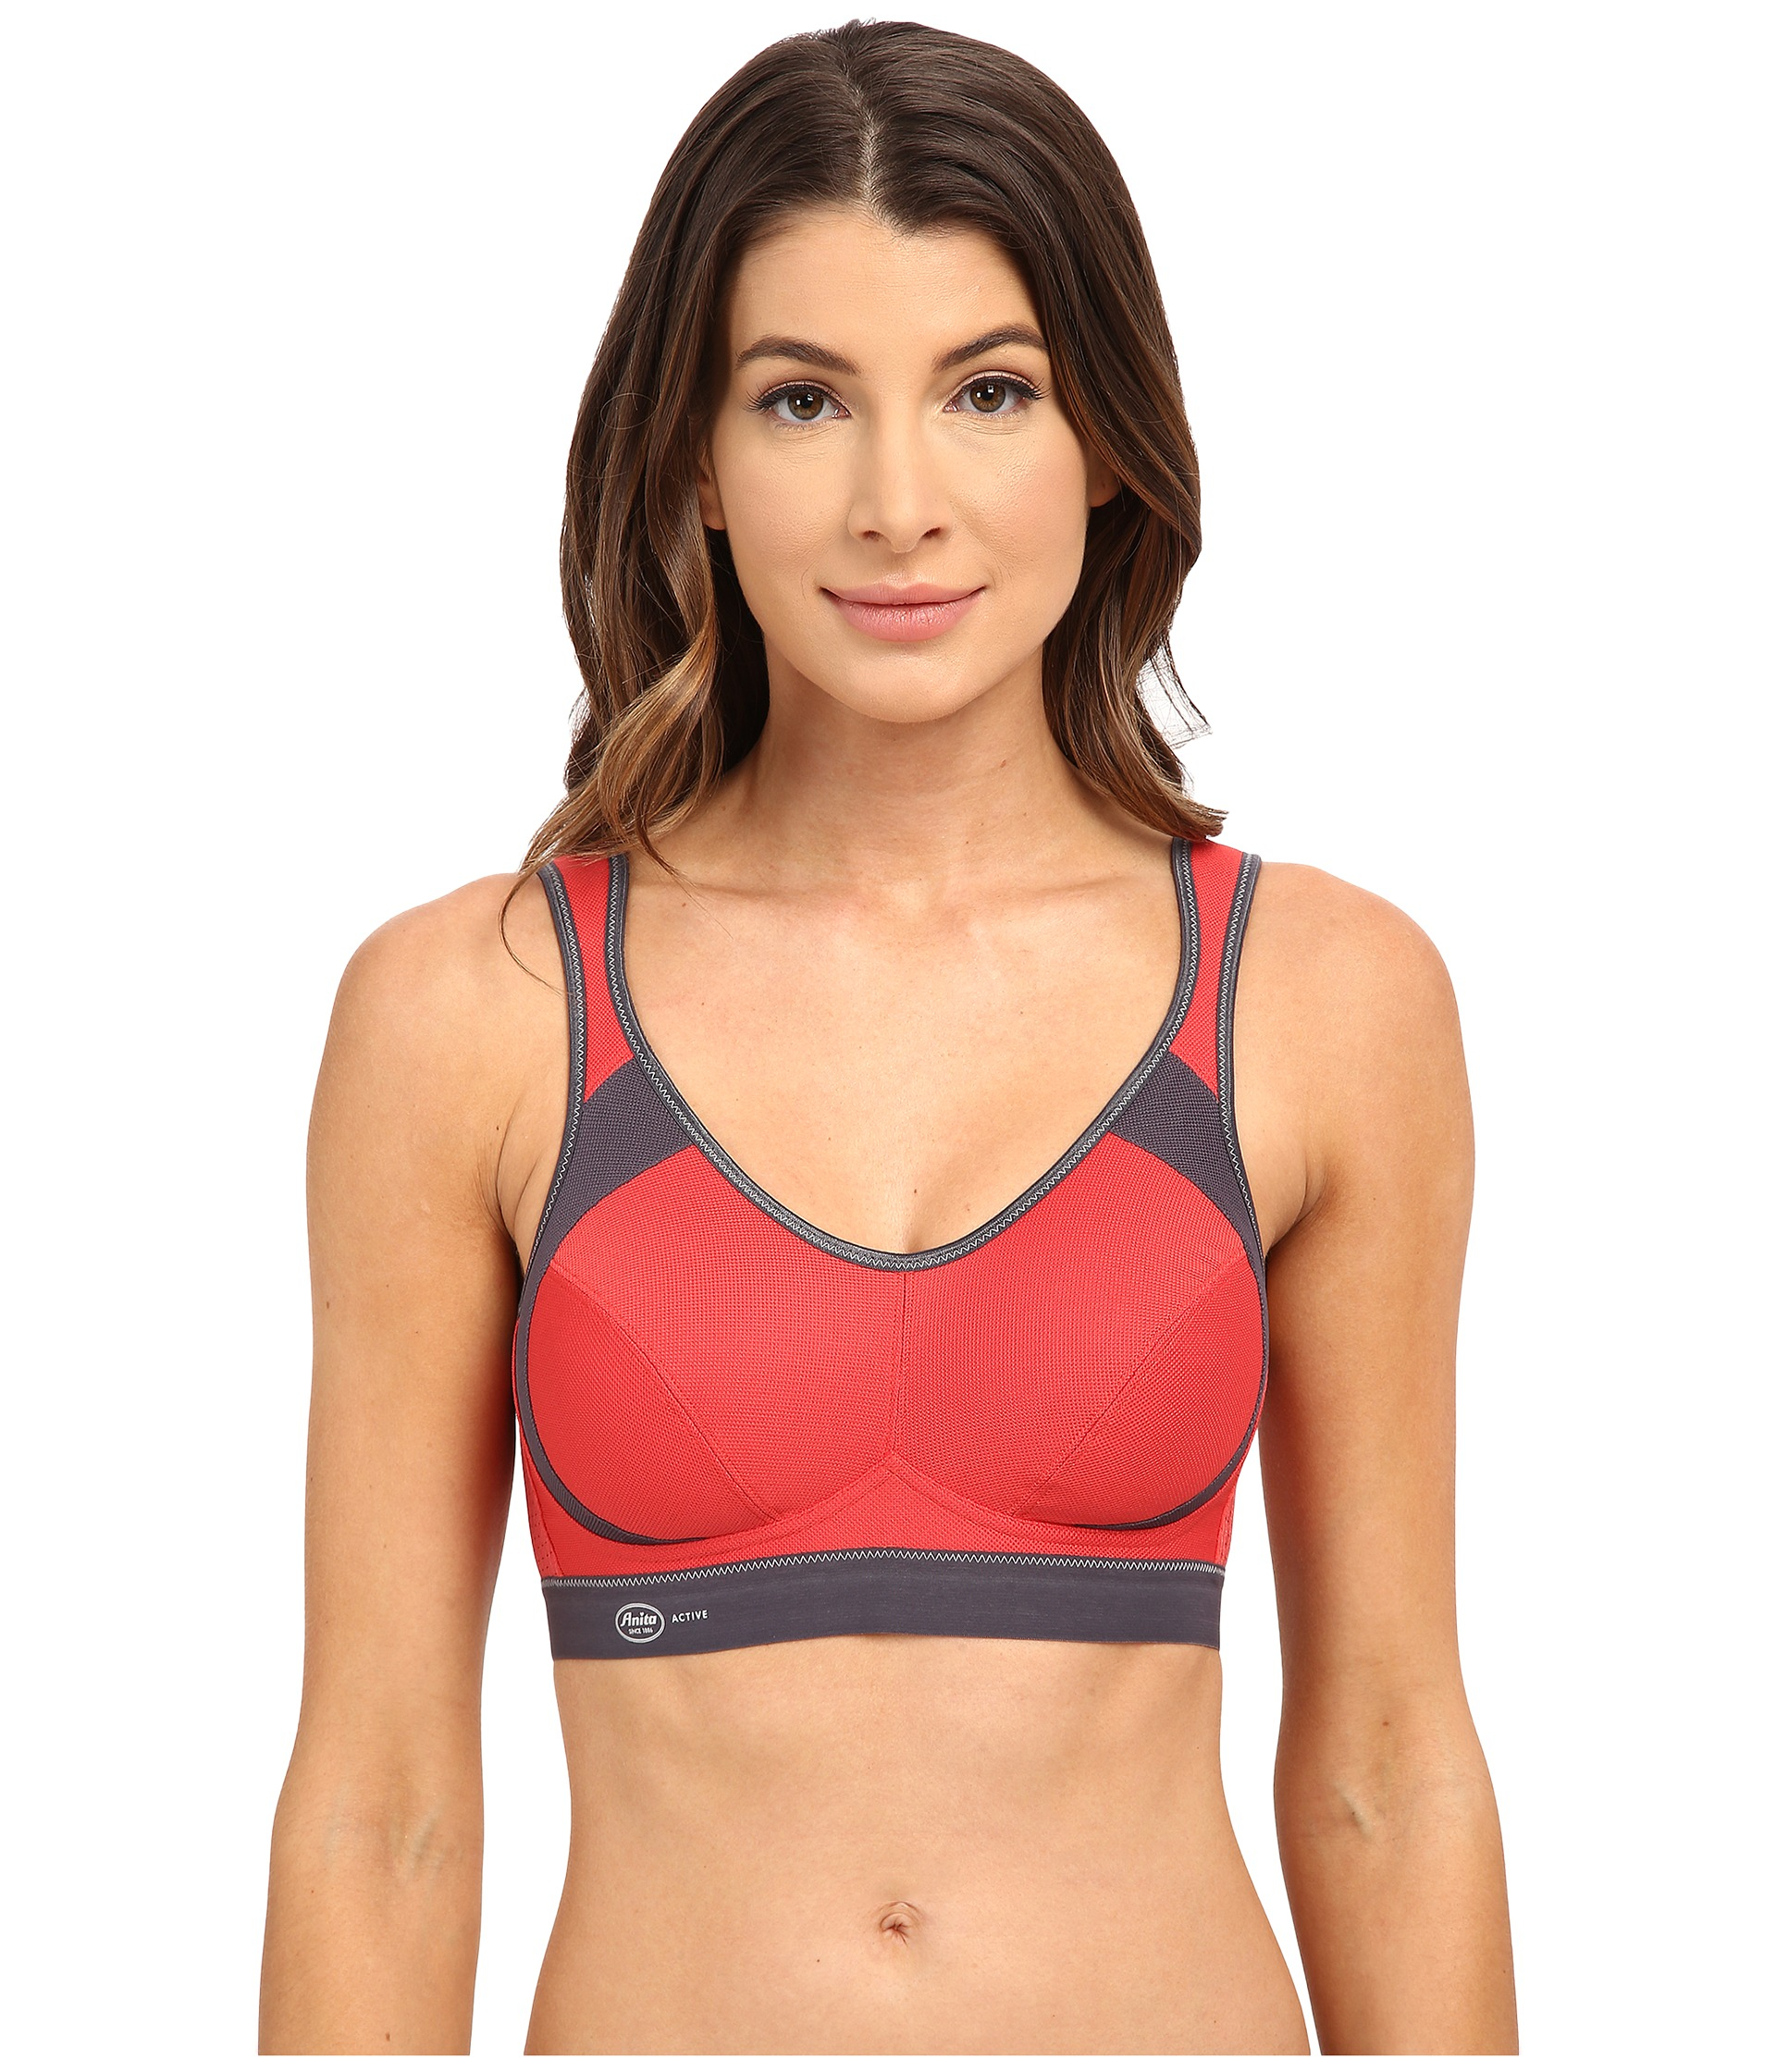 lyst - anita extreme control soft cup sports bra 5527 in red